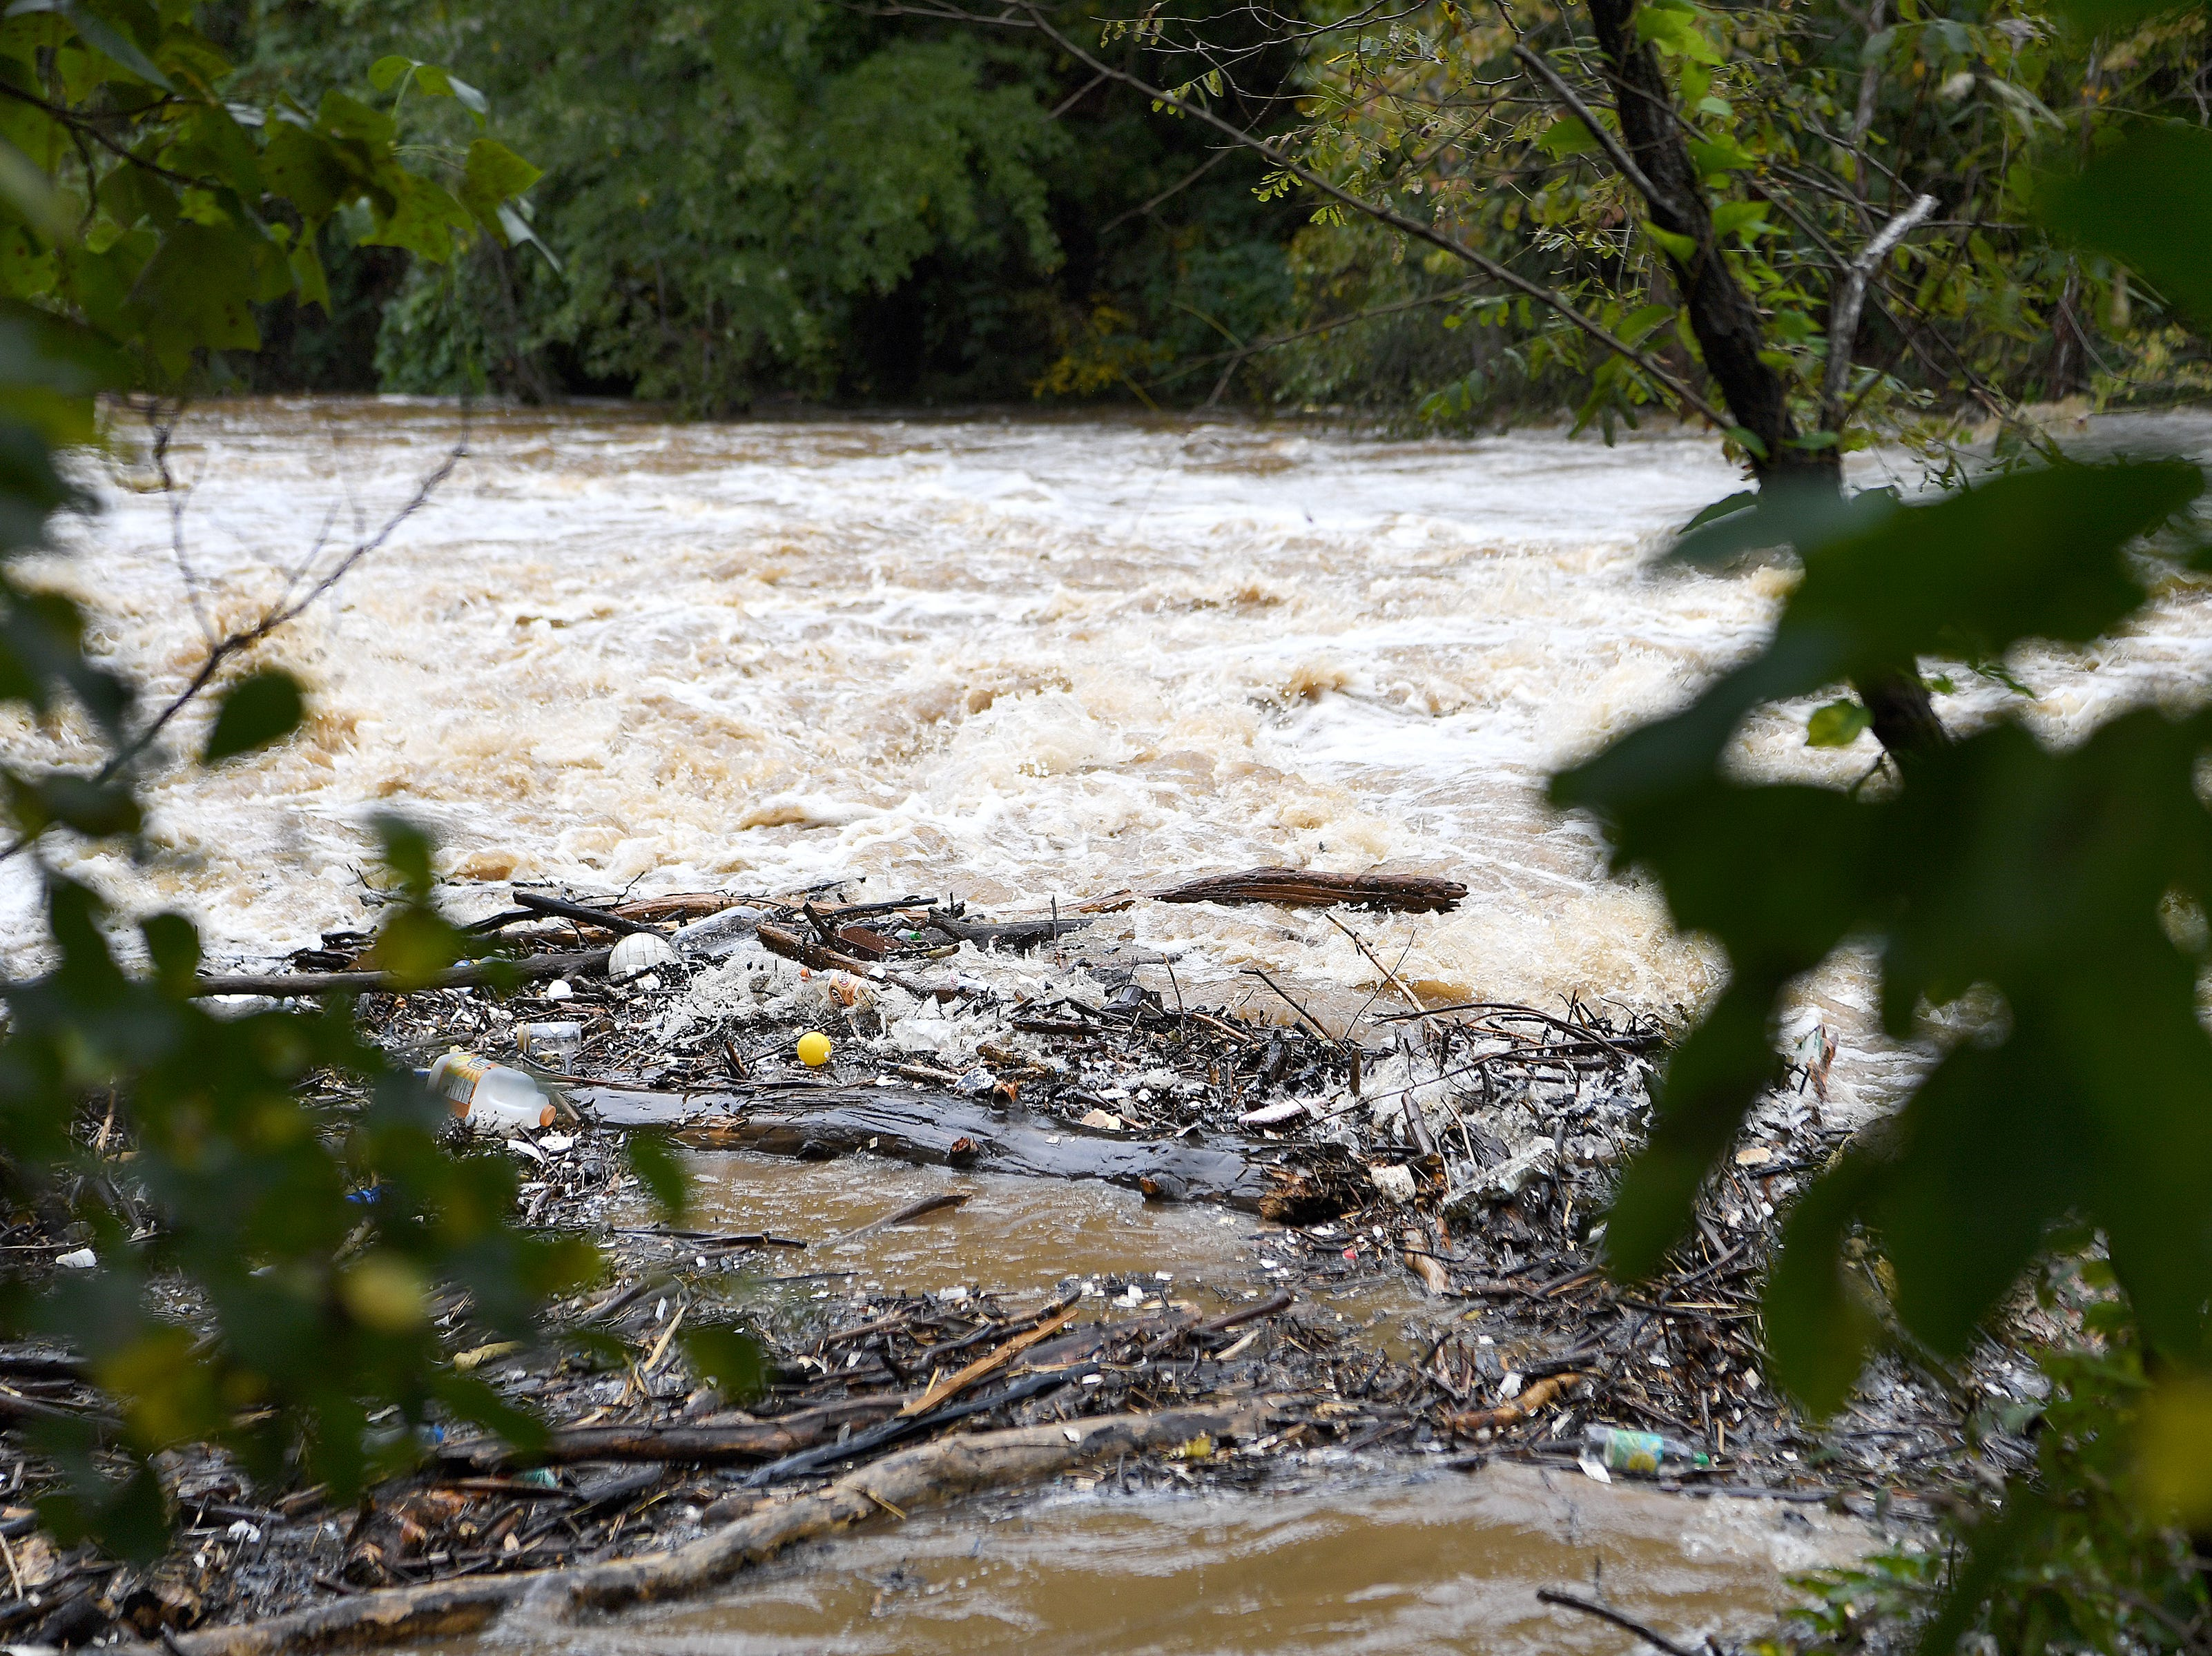 Trash floats on top of the Swannanoa River at Recreation Park as the area floods due to rains from Hurricane Michael on Oct. 11, 2018.